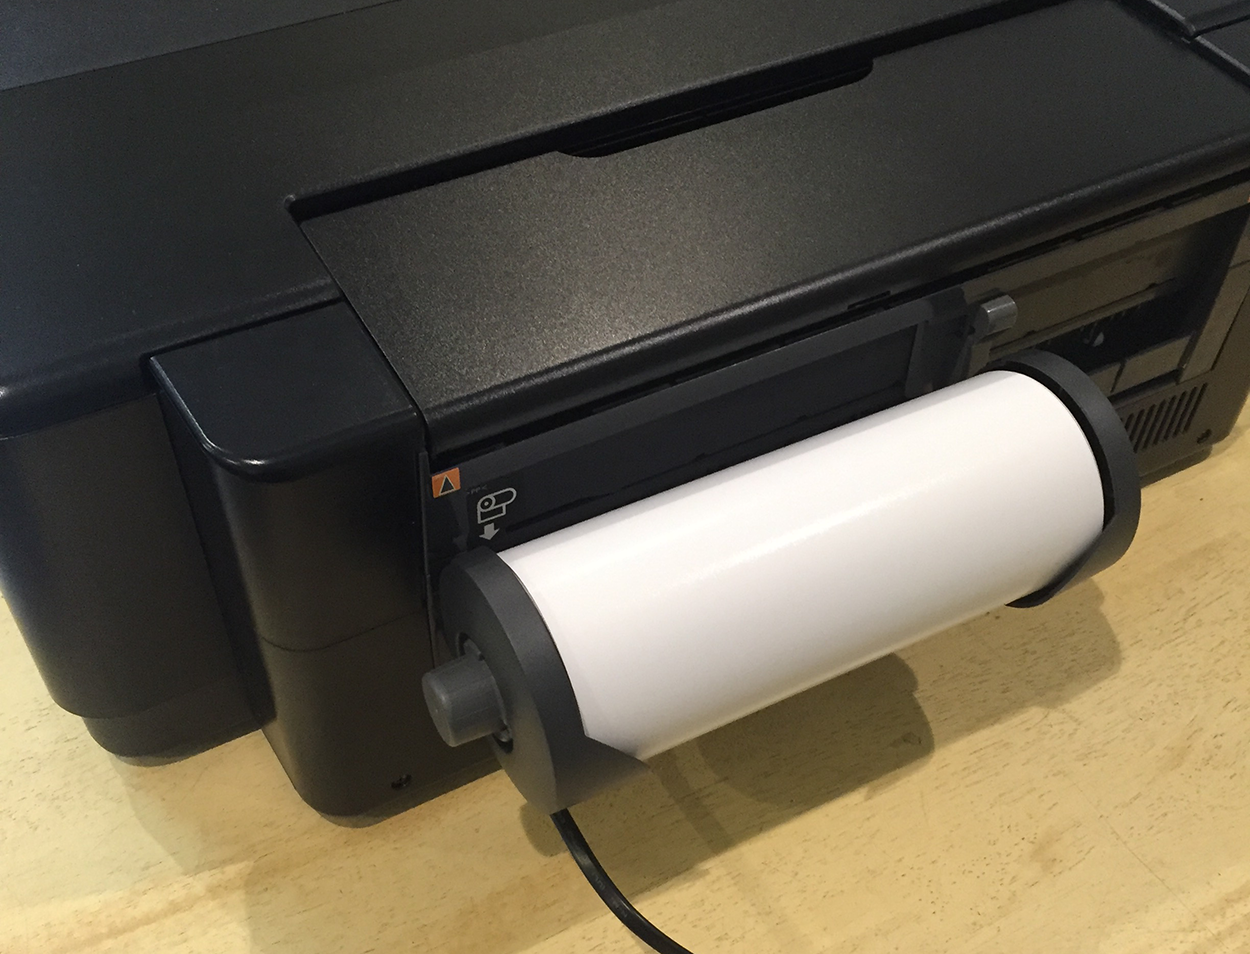 Epson P400 Wide Format Printer: Review and Projects | Cathe Holden's